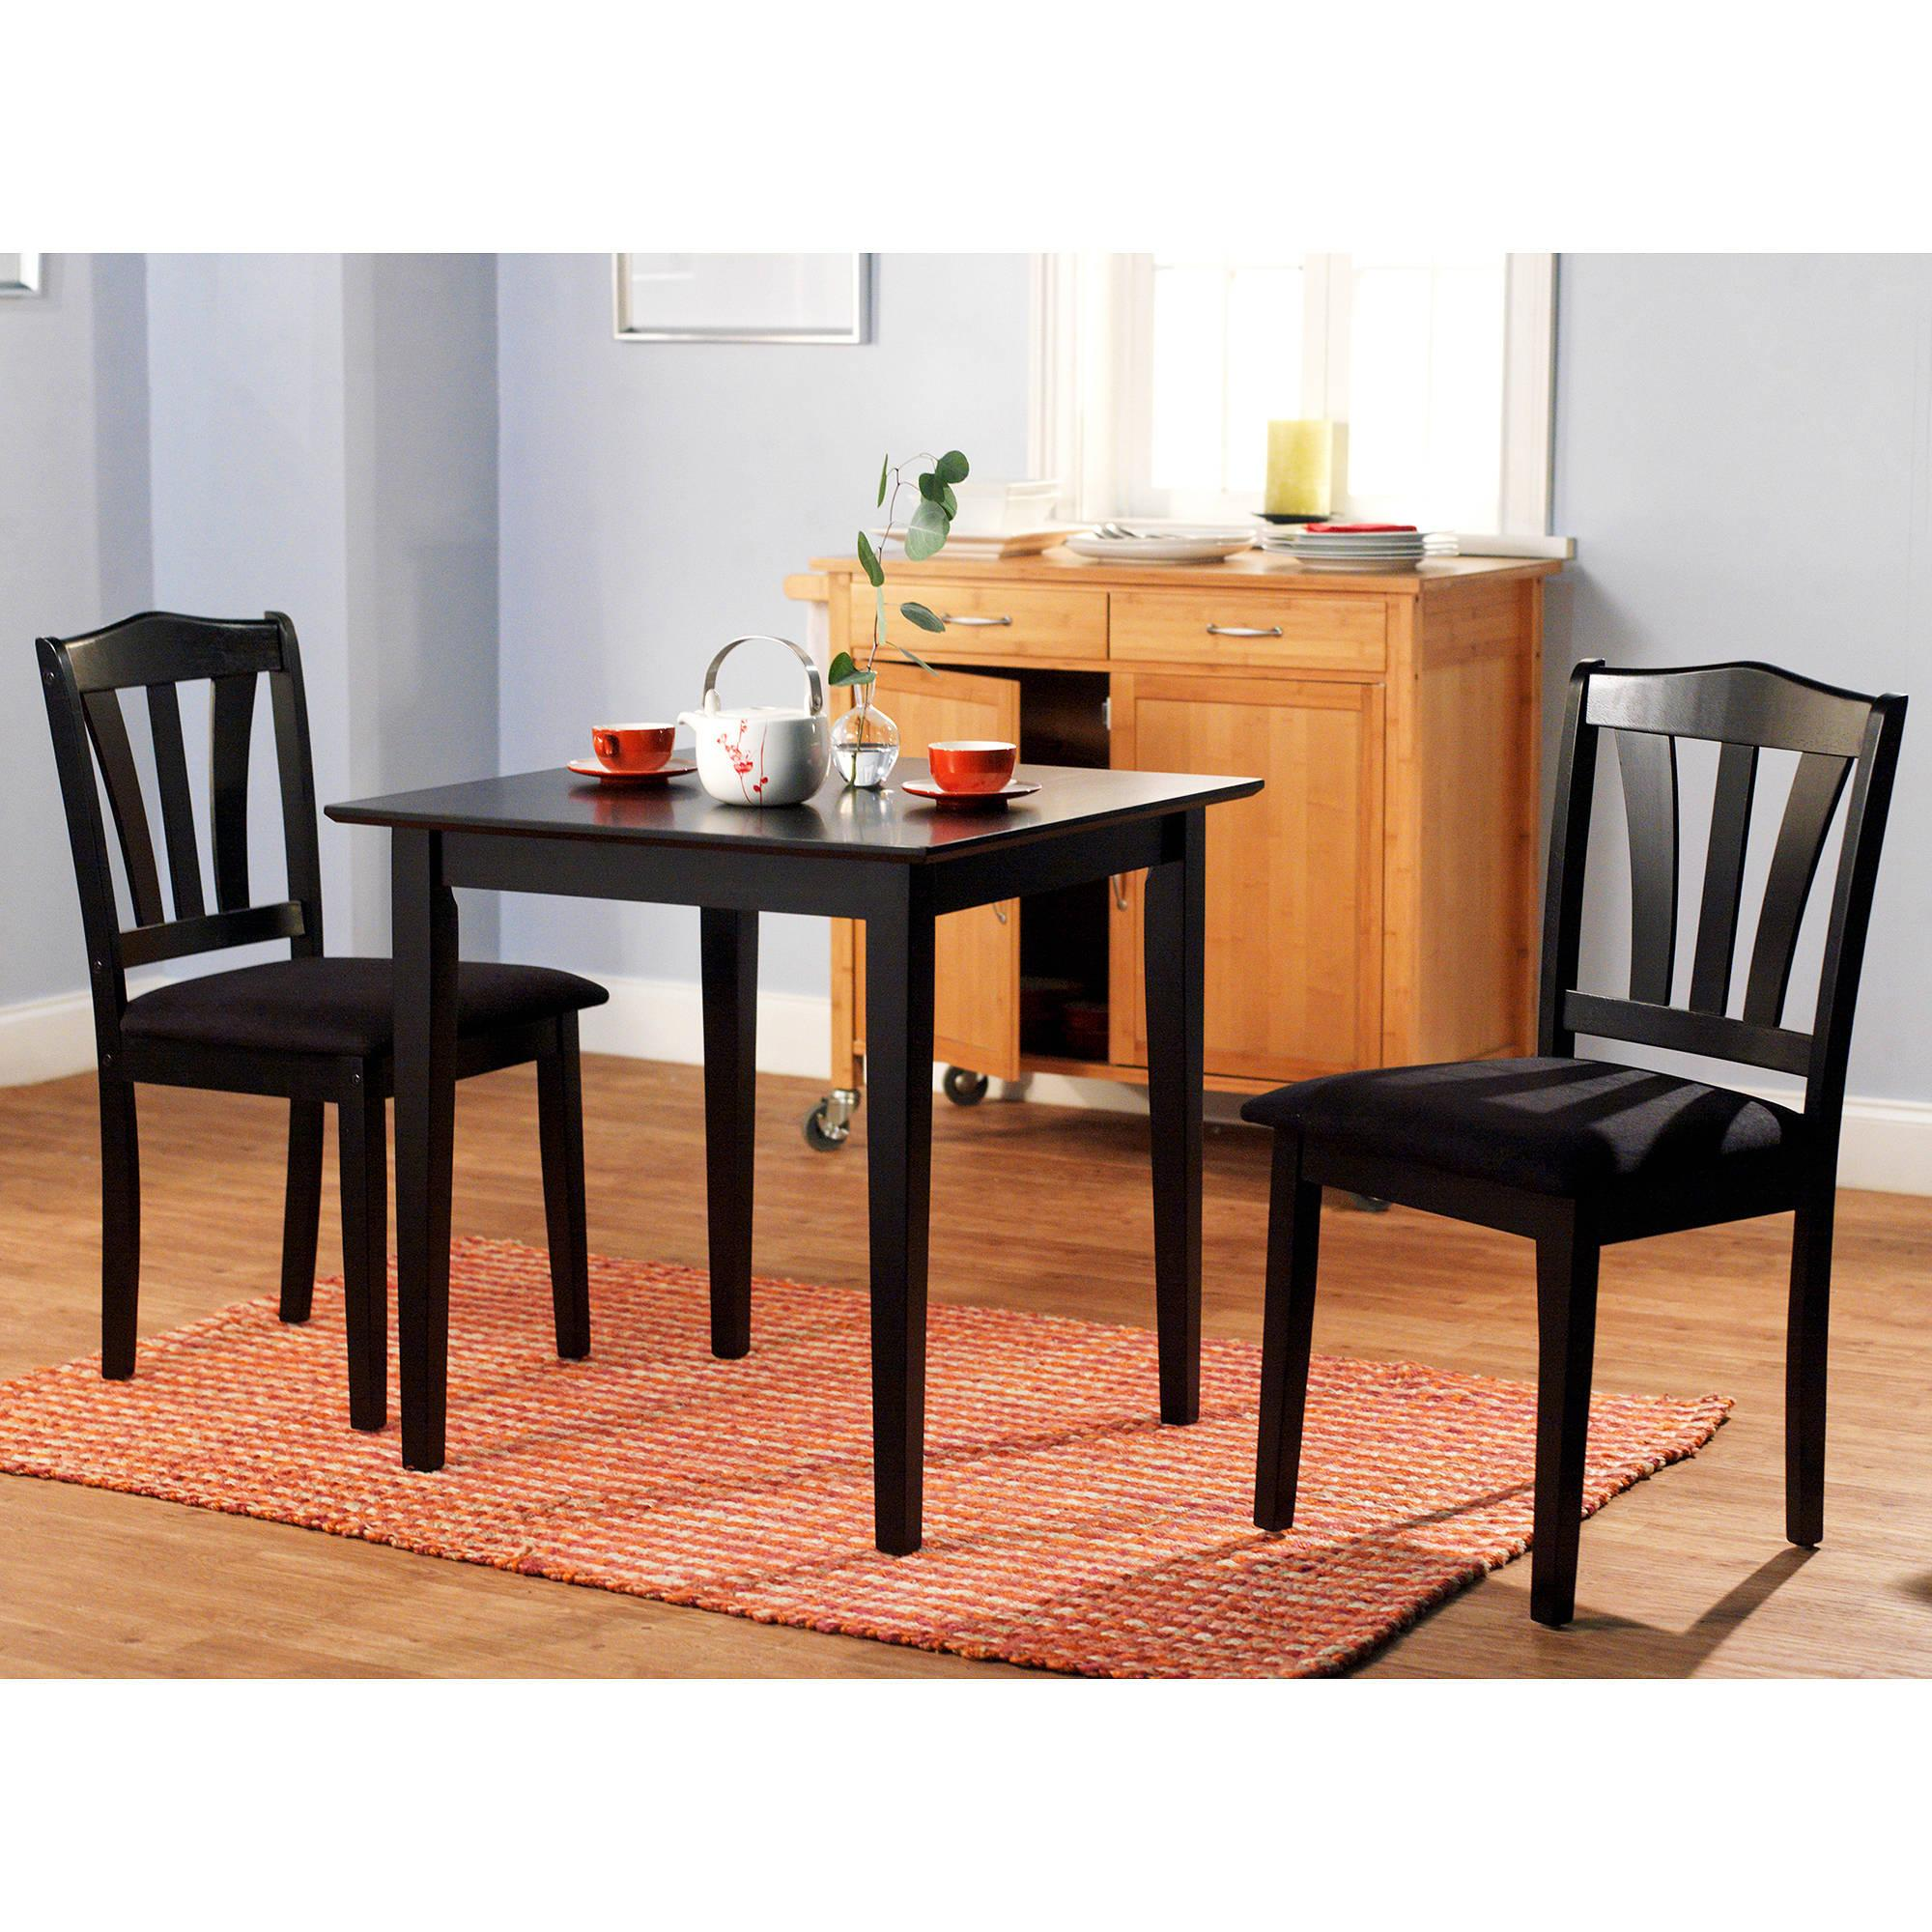 Dinet Set: 3 Piece Dining Set Table 2 Chairs Kitchen Room Wood